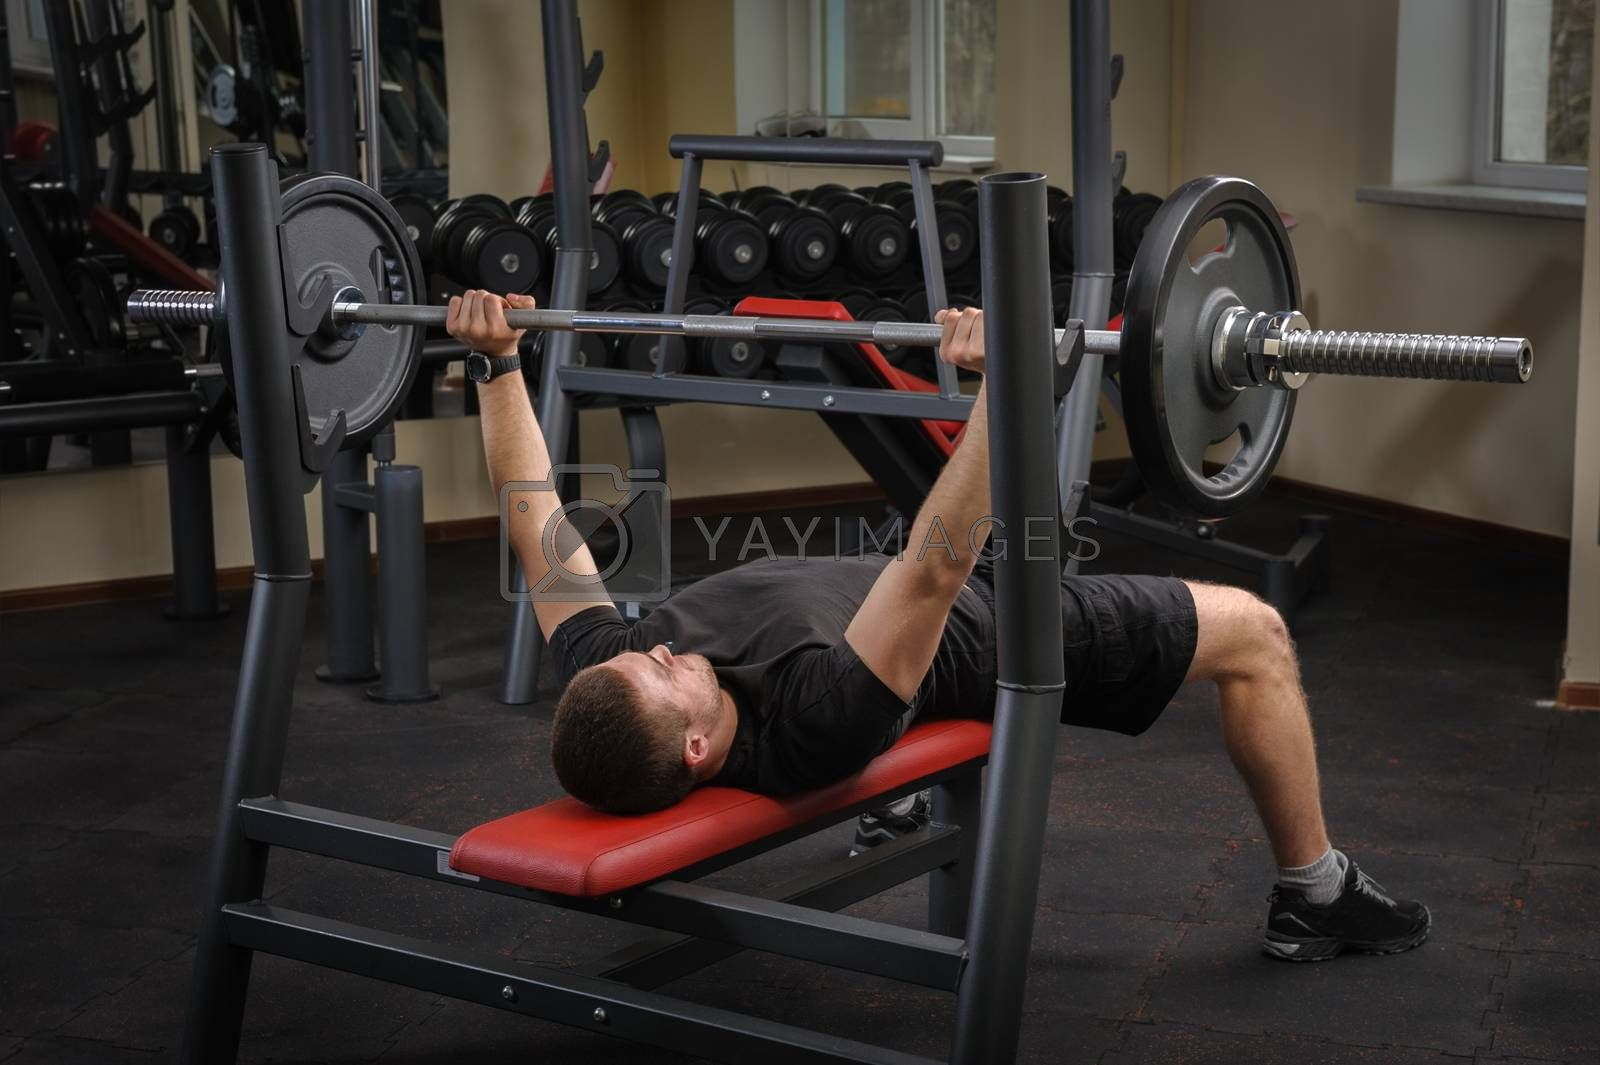 Royalty free image of young man doing bench press workout in gym by starush